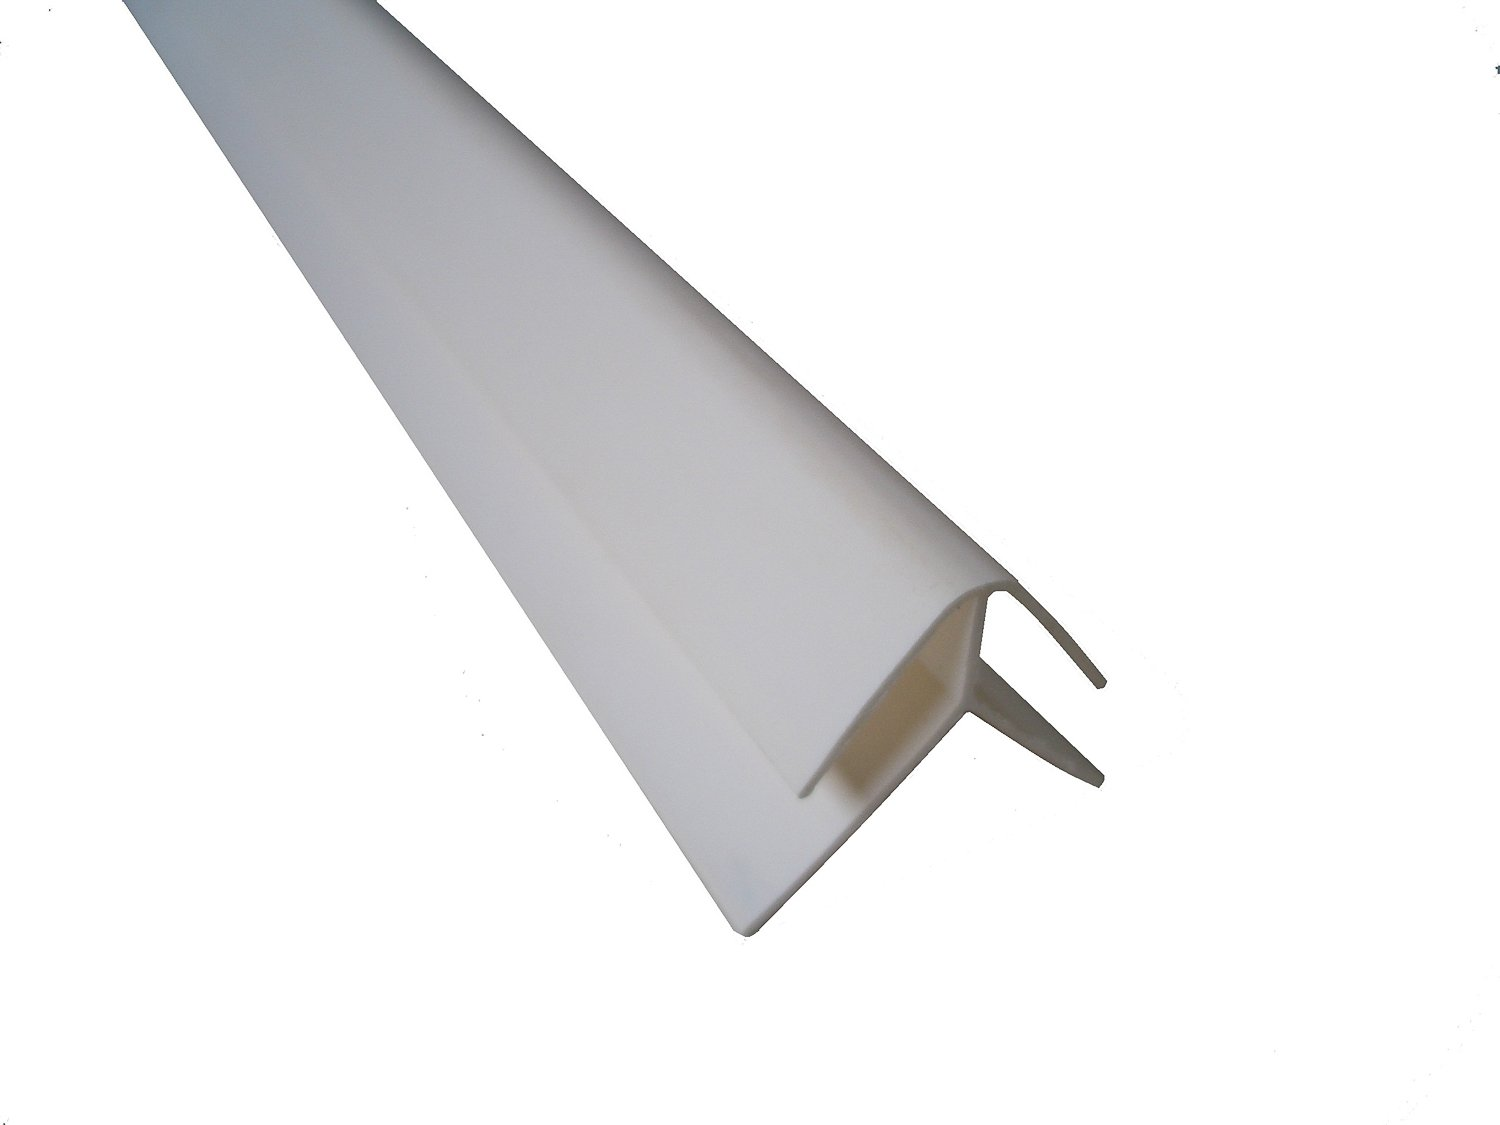 White Panel Trim Perfect For Bathroom Kitchen Shower Wall PVC Cladding Panels-5mm External Corner Edging Trim-100% Waterproof-Use with Claddtech Adhesive